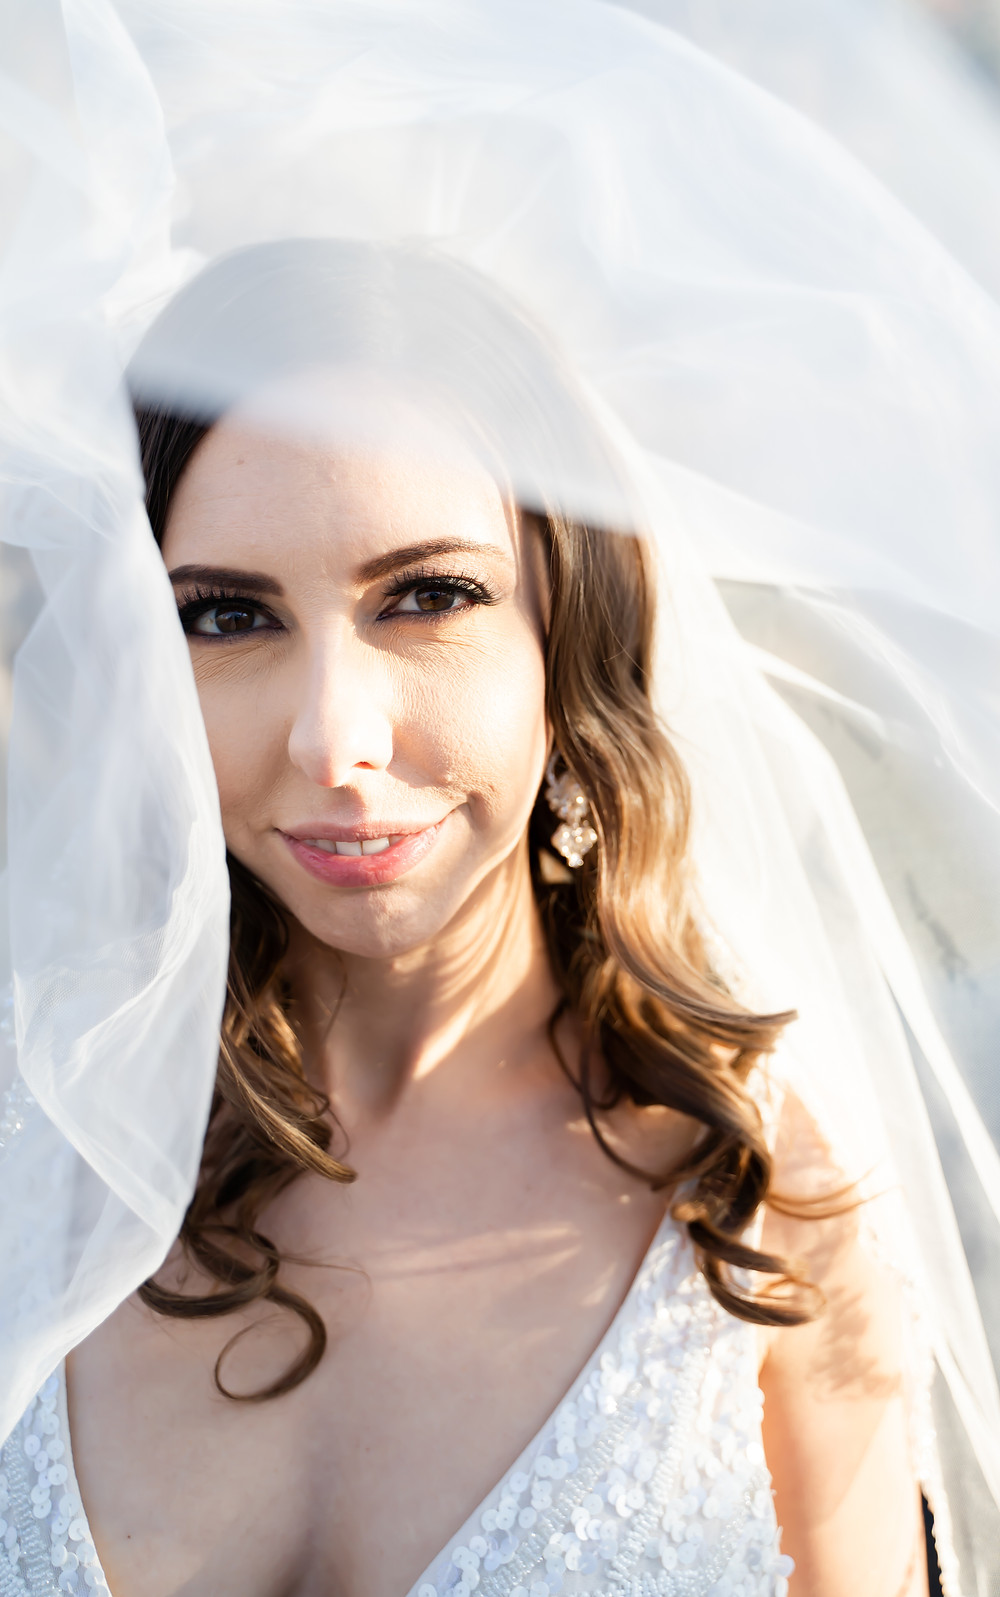 Wedding photo inspiration and tips for wedding planning